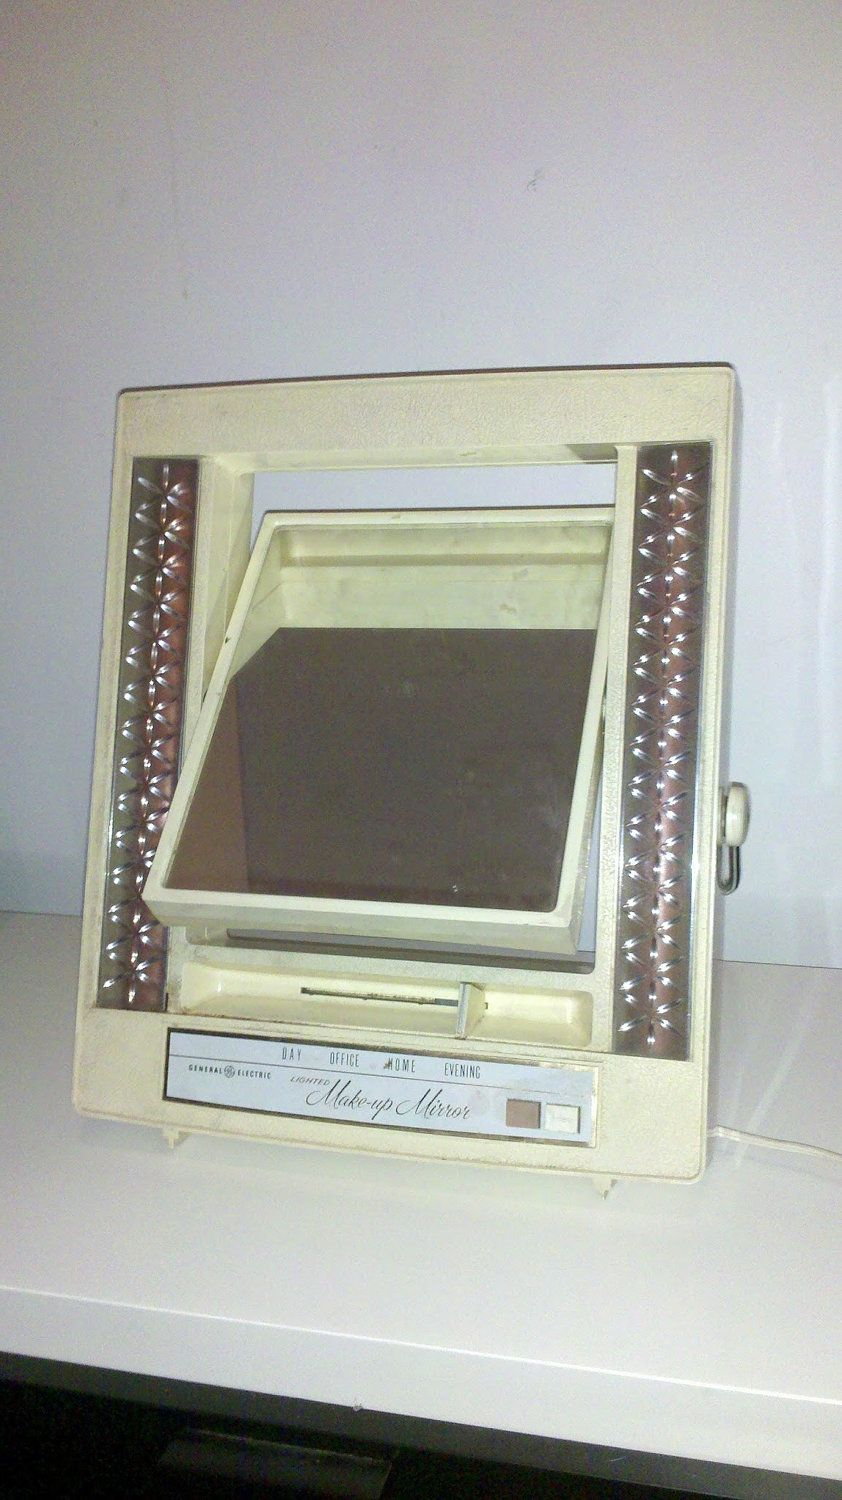 1971 General Electric Lighted Makeup Mirror You Could Slide A